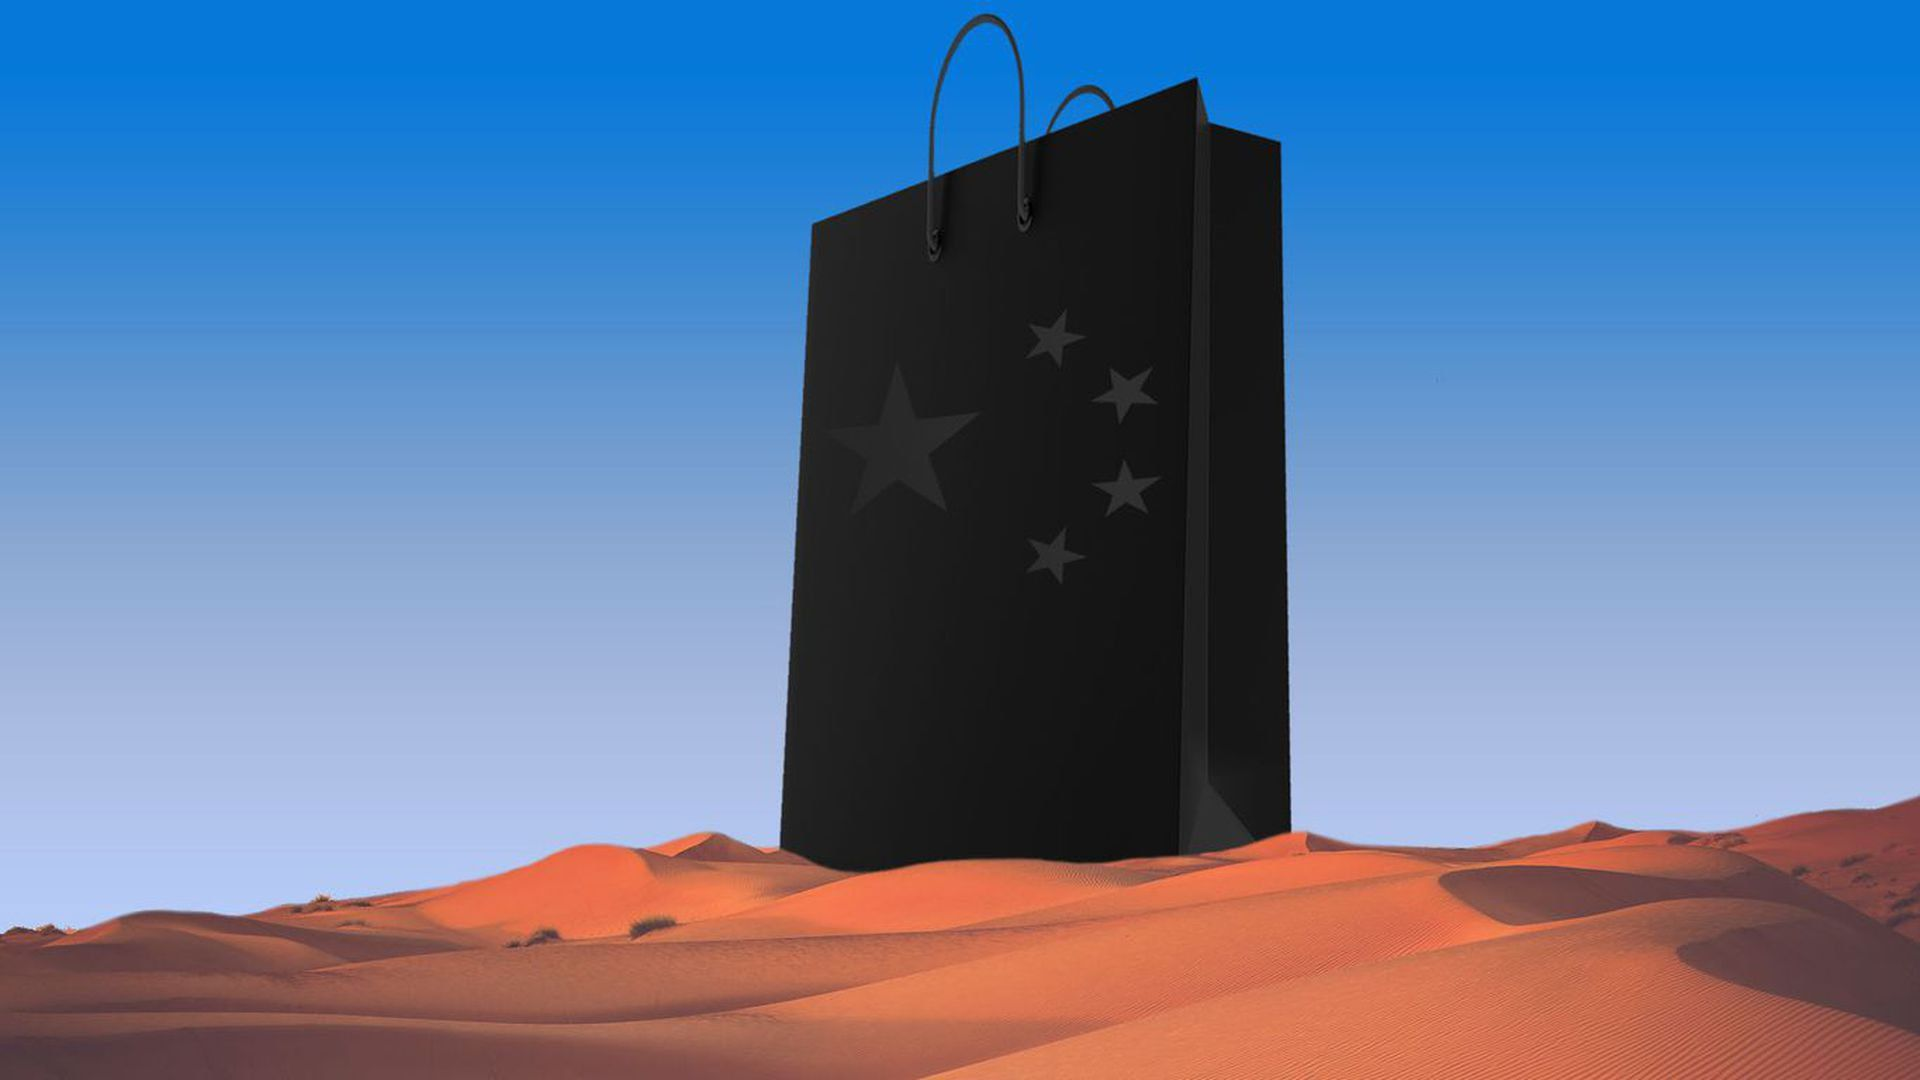 illustration of a black grocery bag with chinese stars on it in the middle of the desert